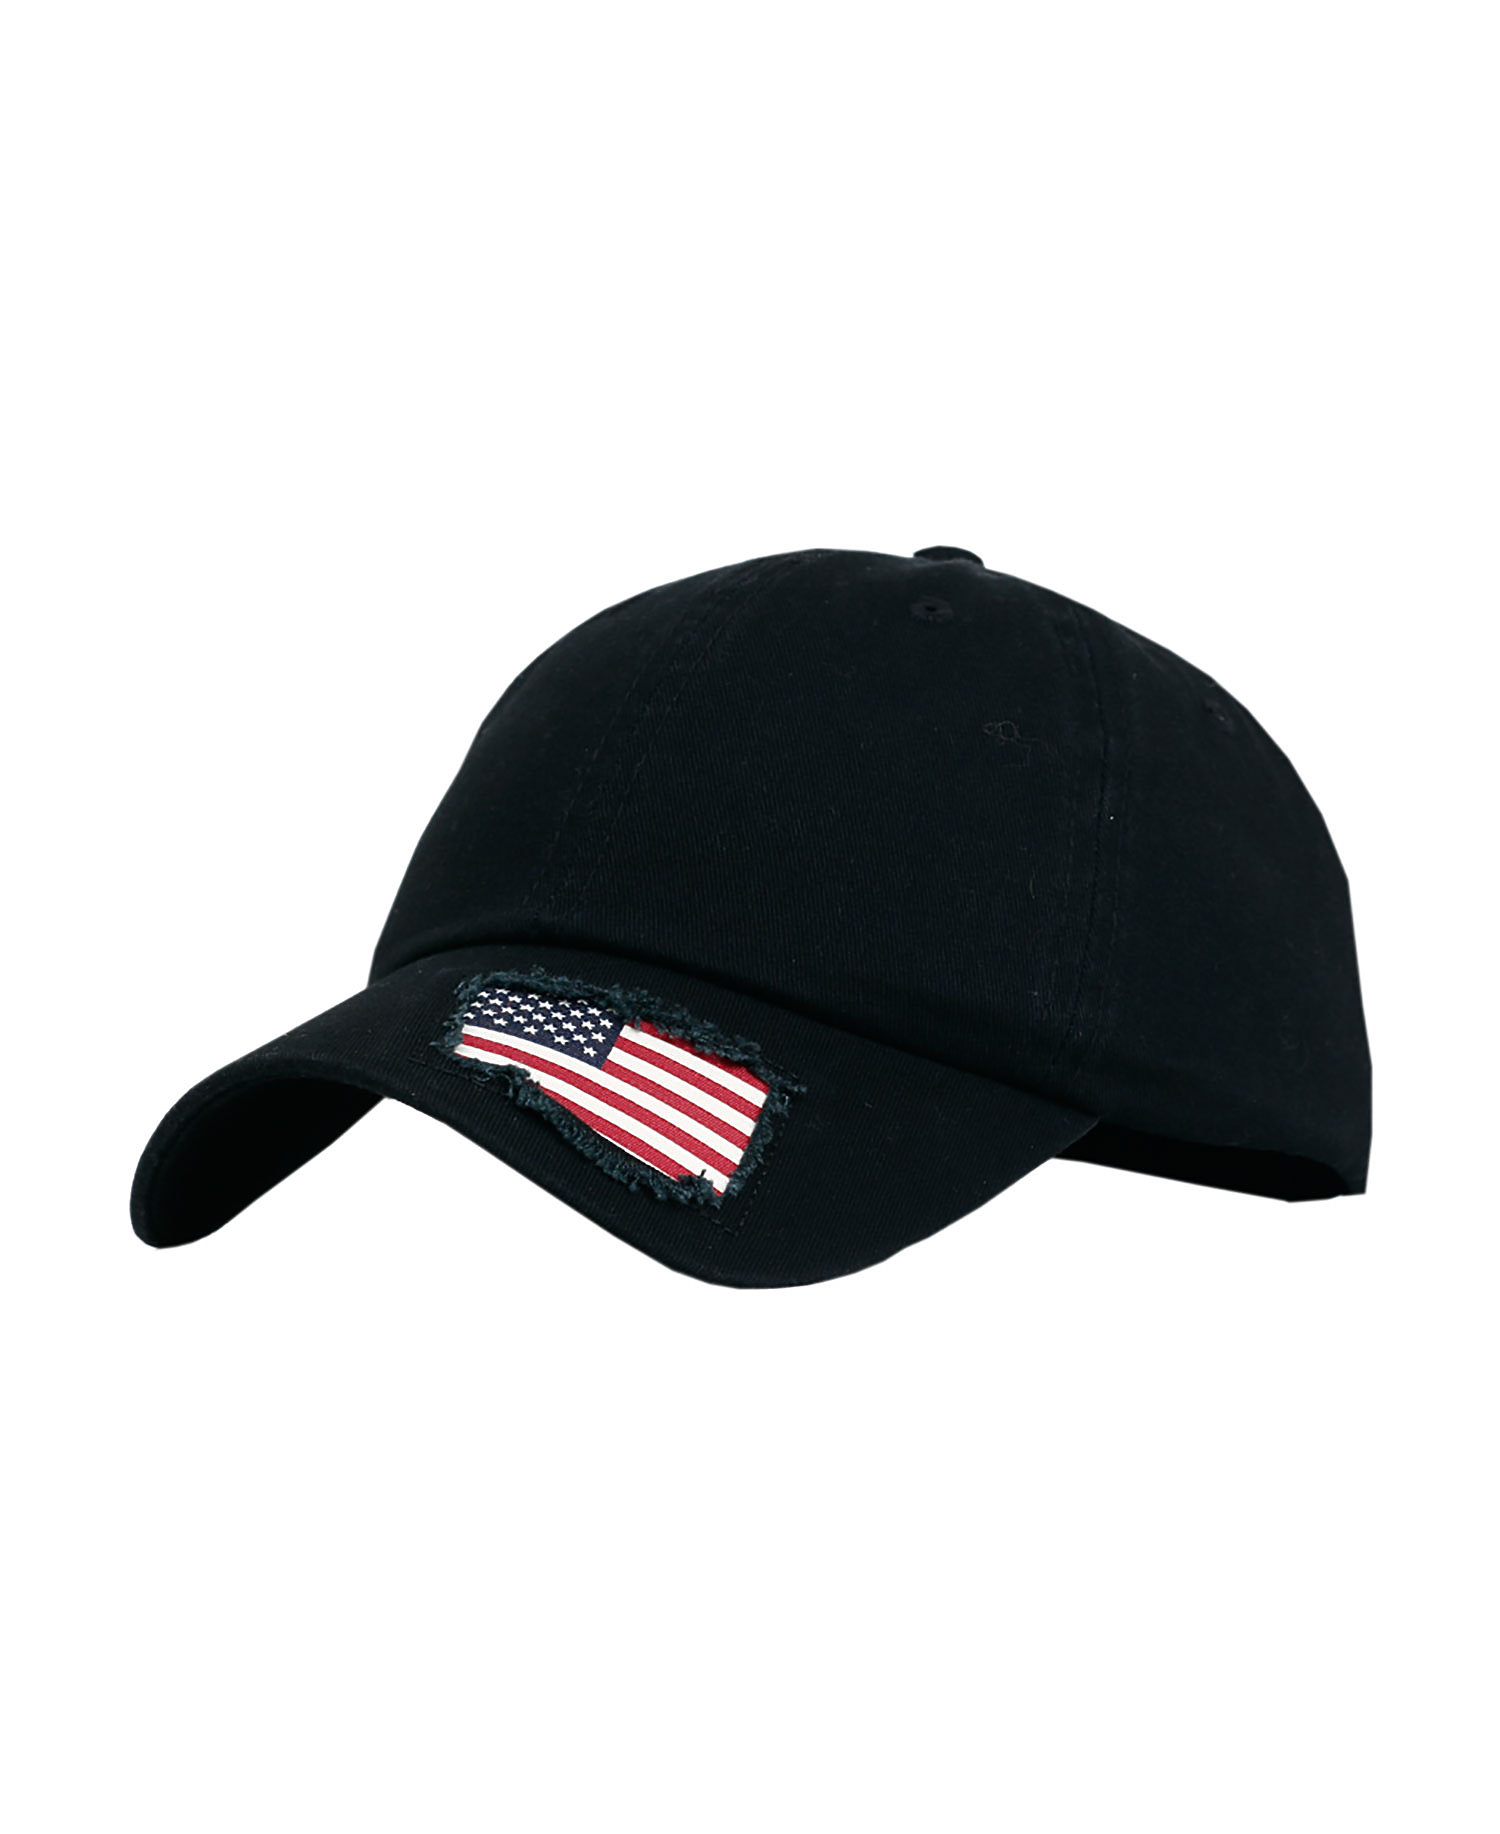 Fahrenheit F0506 - Garment Washed Cotton with Woven Flag Cap